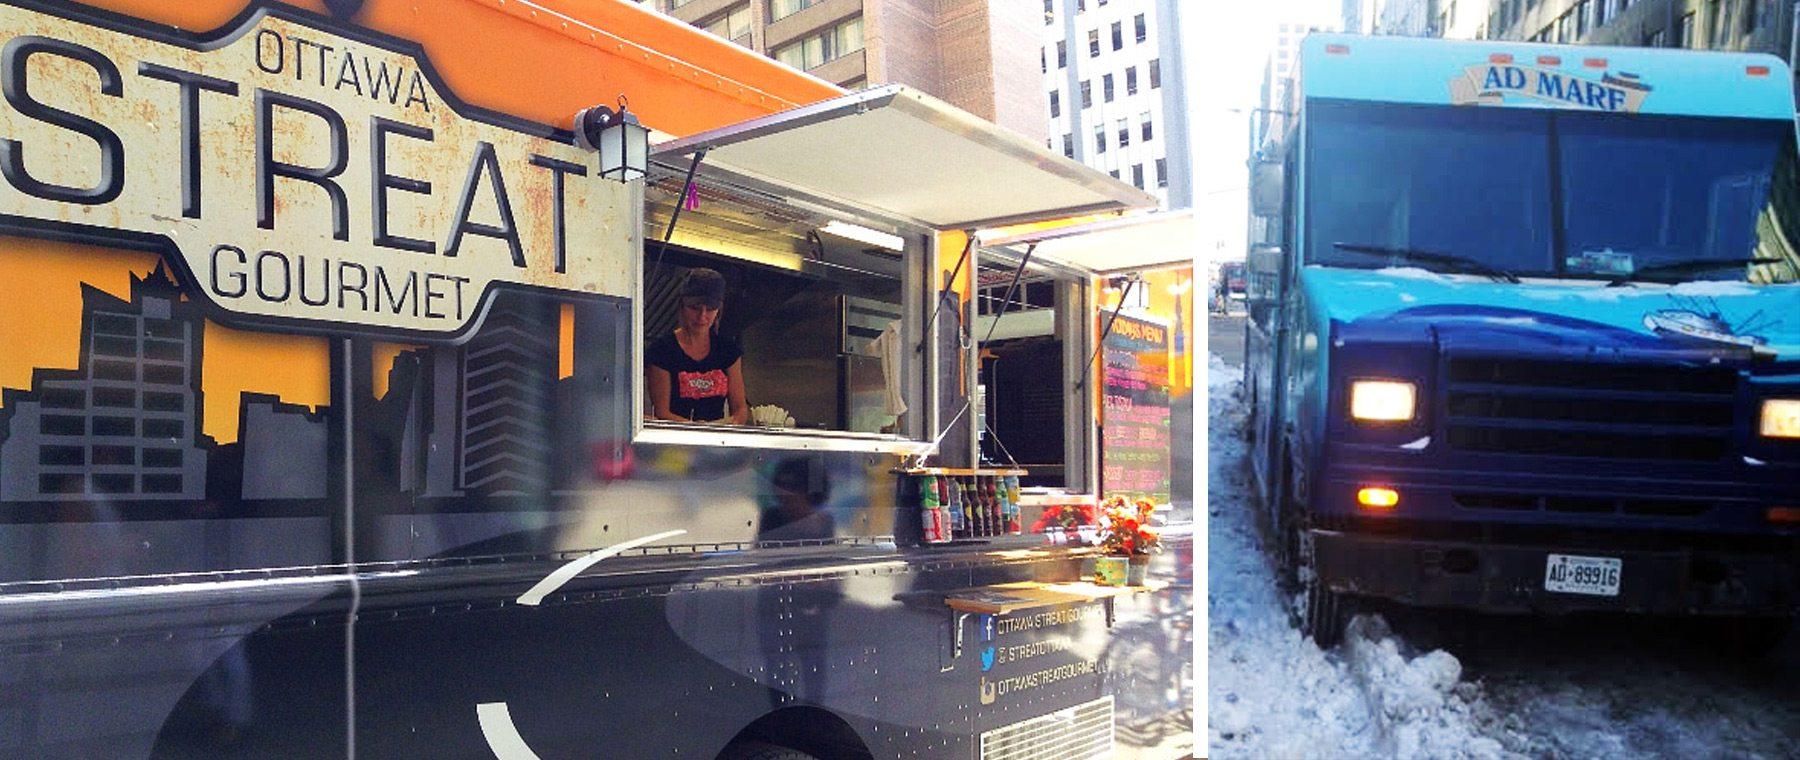 Streat Gourmet set to close; Ad Mare — last fine food truck open this winter